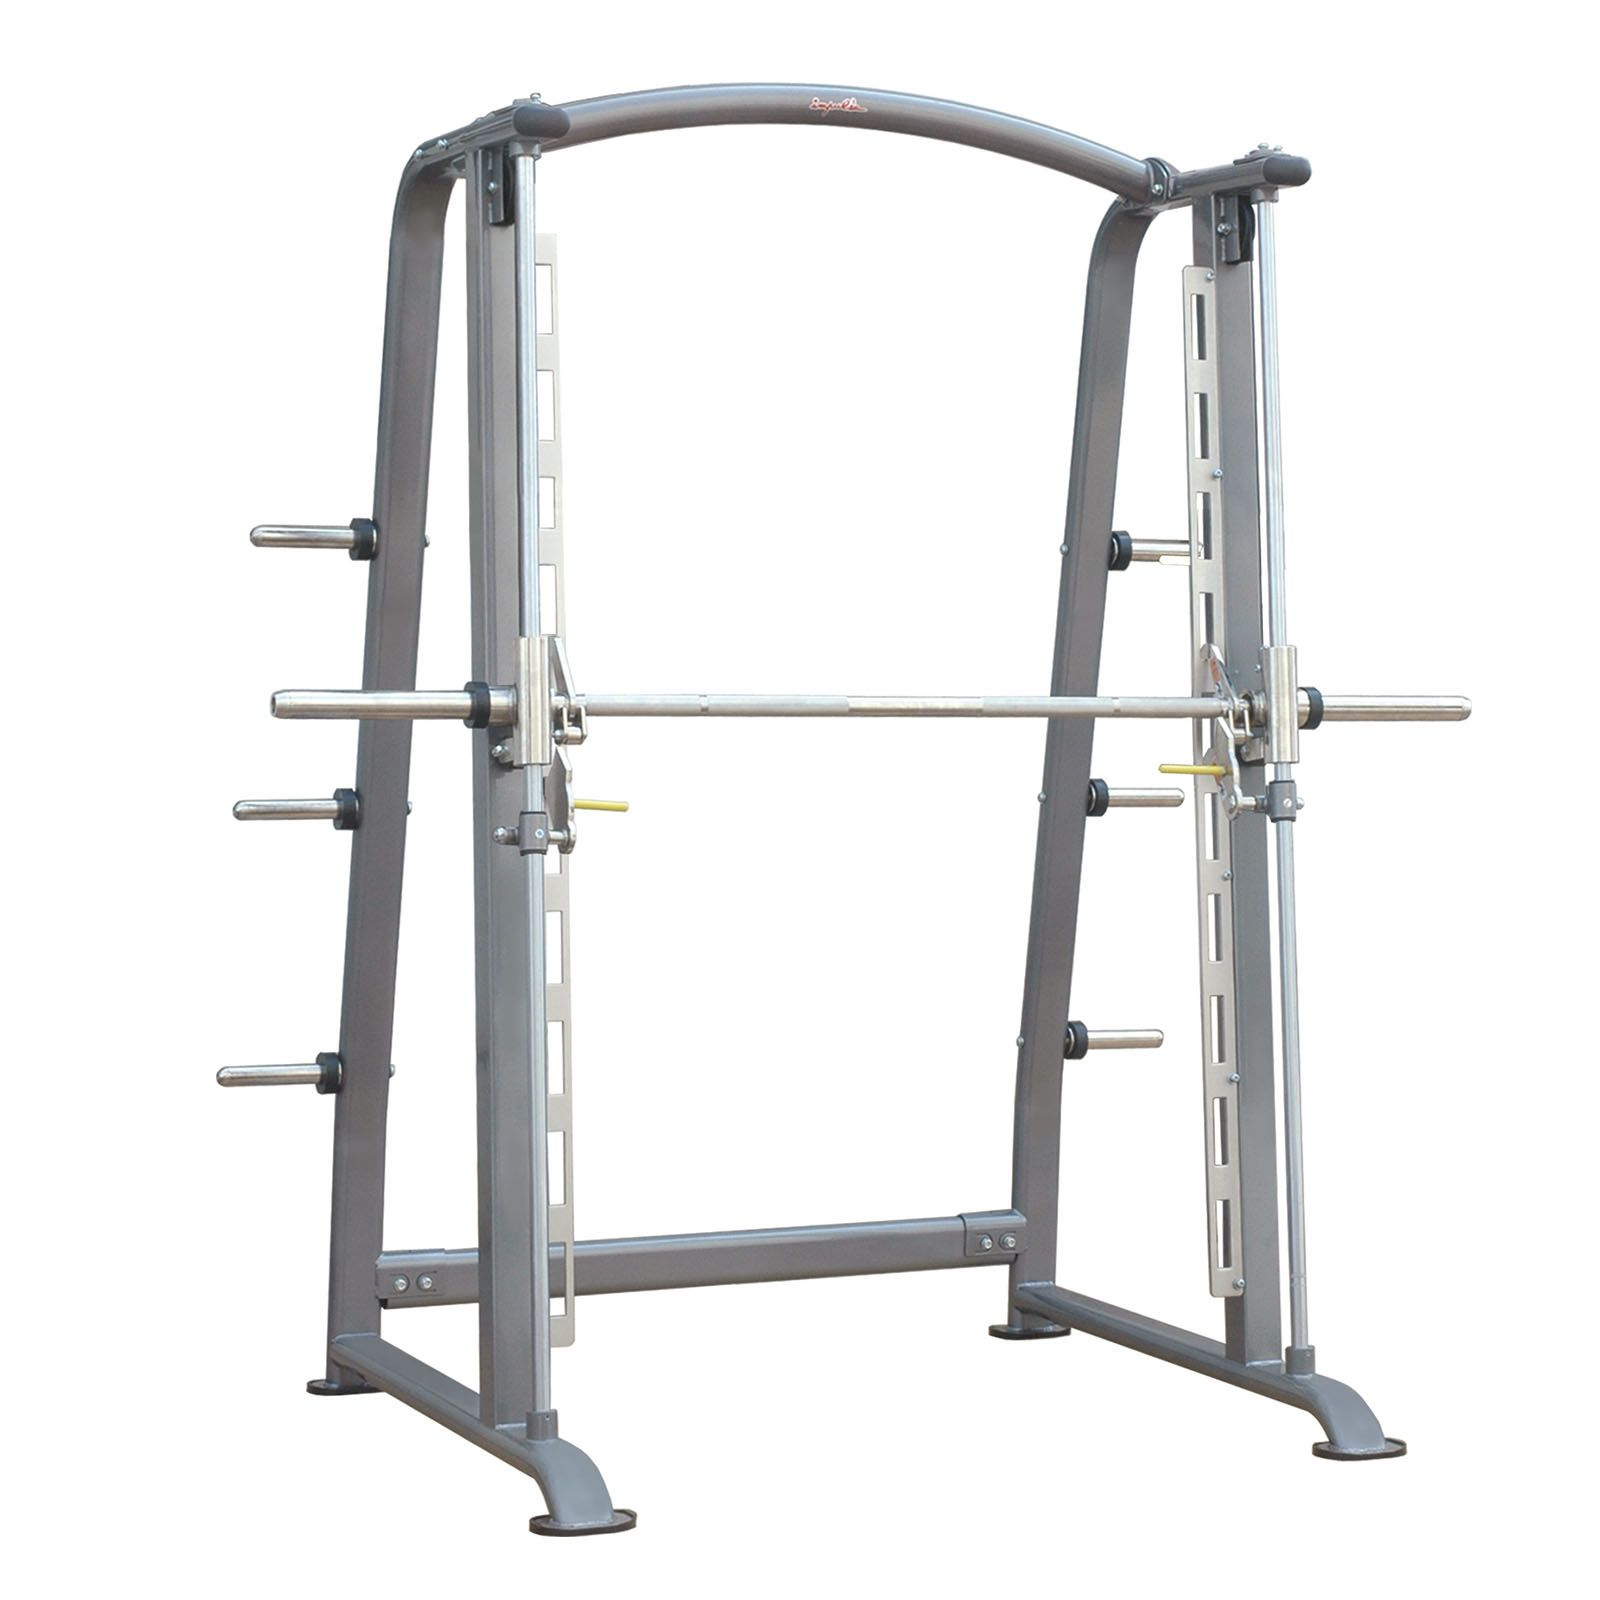 Pilates Equipment in Pictures